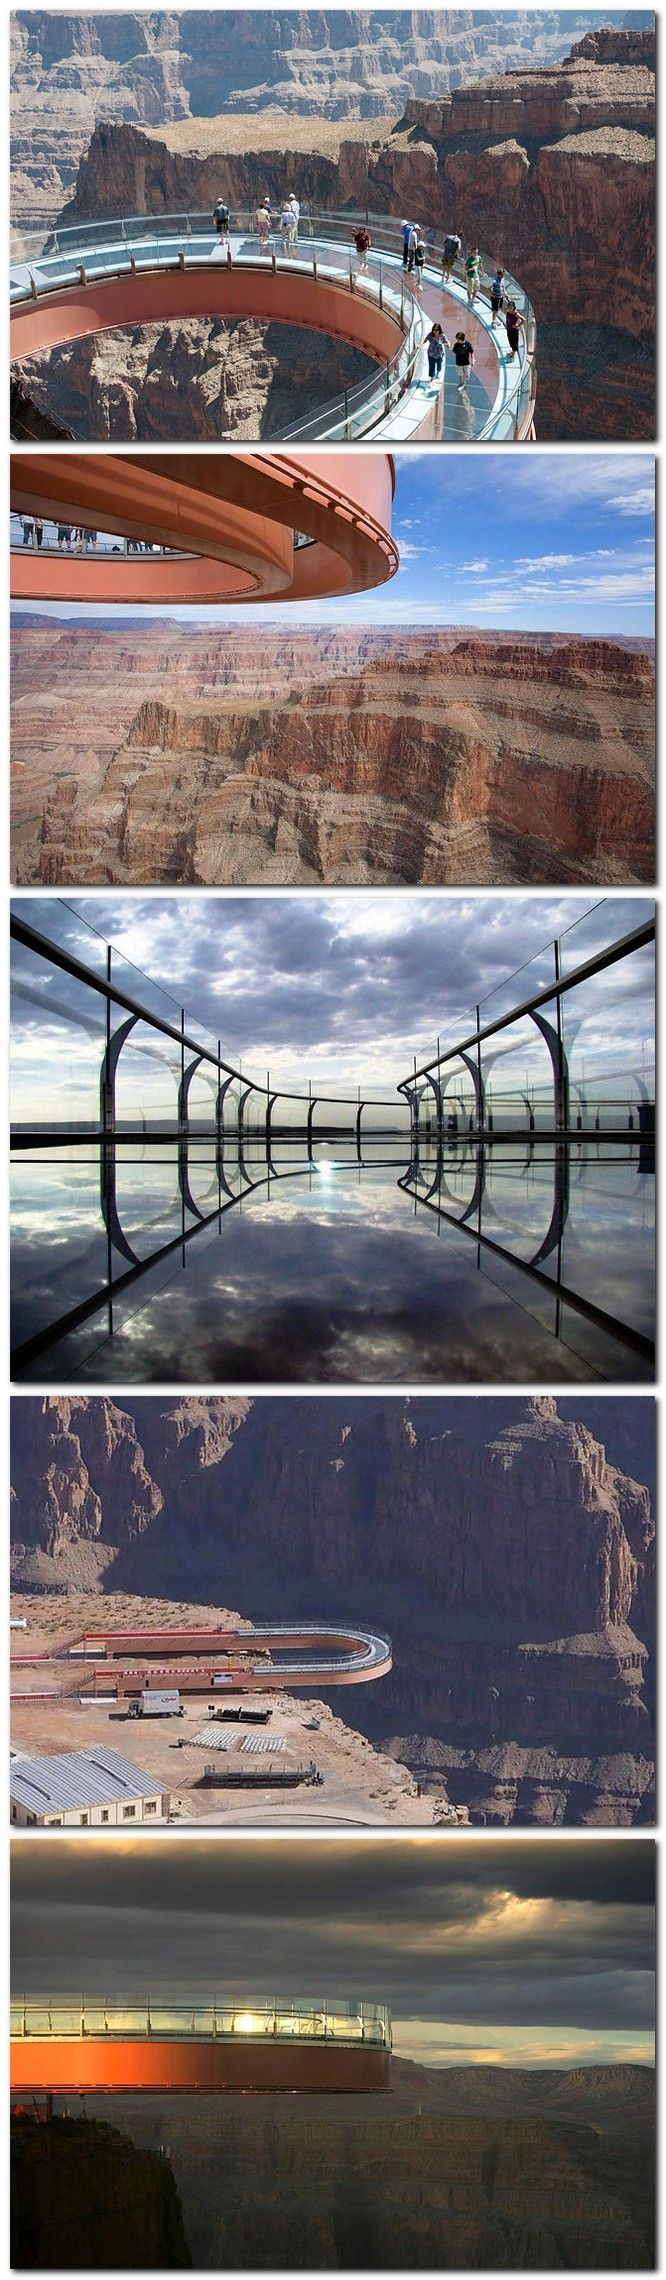 DARE TO STEP OUT ON TO THE SKYWALK. Grand Canyon